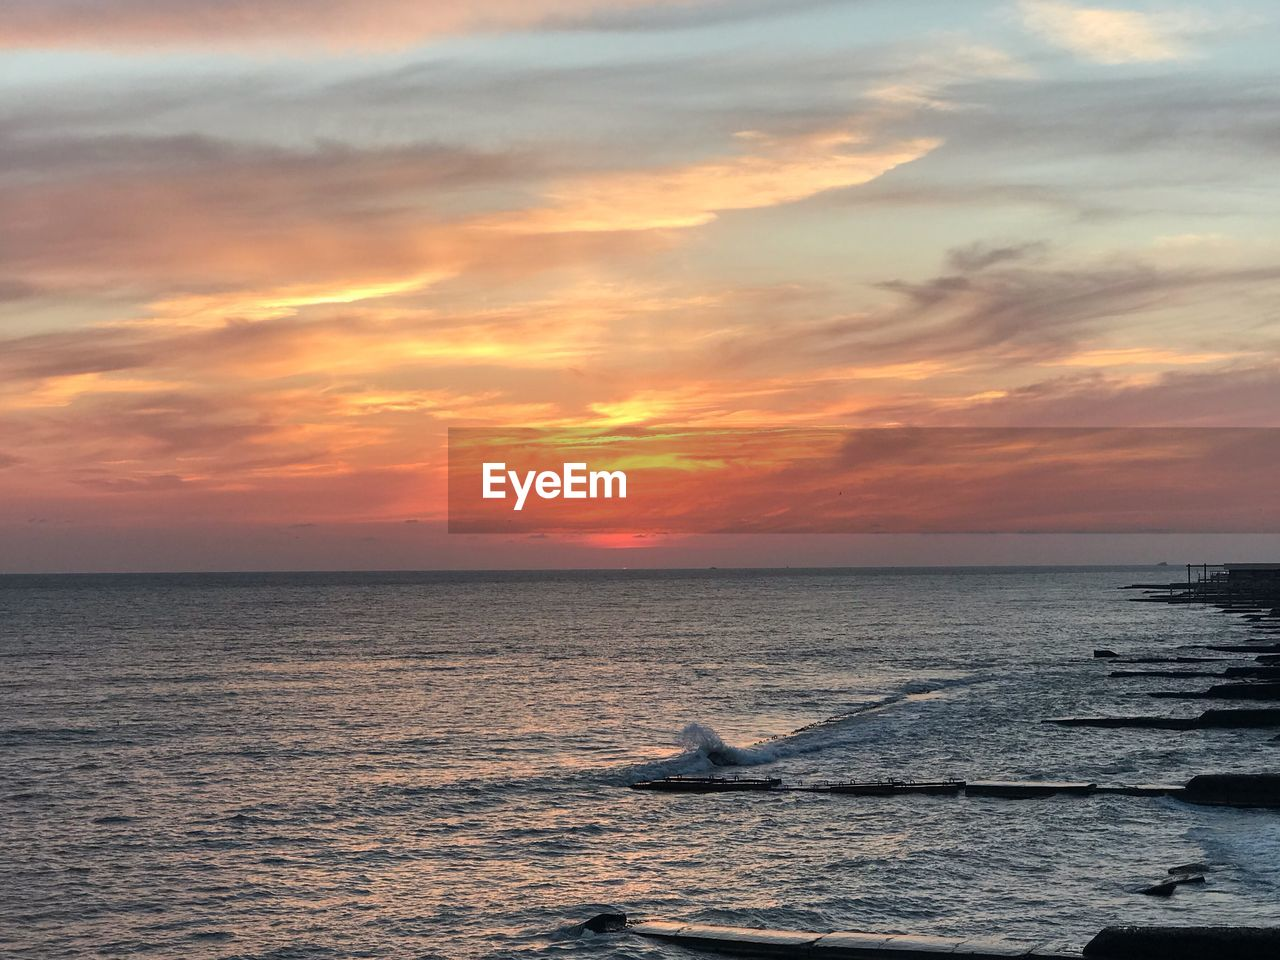 water, sea, sky, sunset, horizon, beauty in nature, horizon over water, cloud - sky, scenics - nature, orange color, tranquility, waterfront, nature, tranquil scene, idyllic, outdoors, motion, non-urban scene, no people, marine